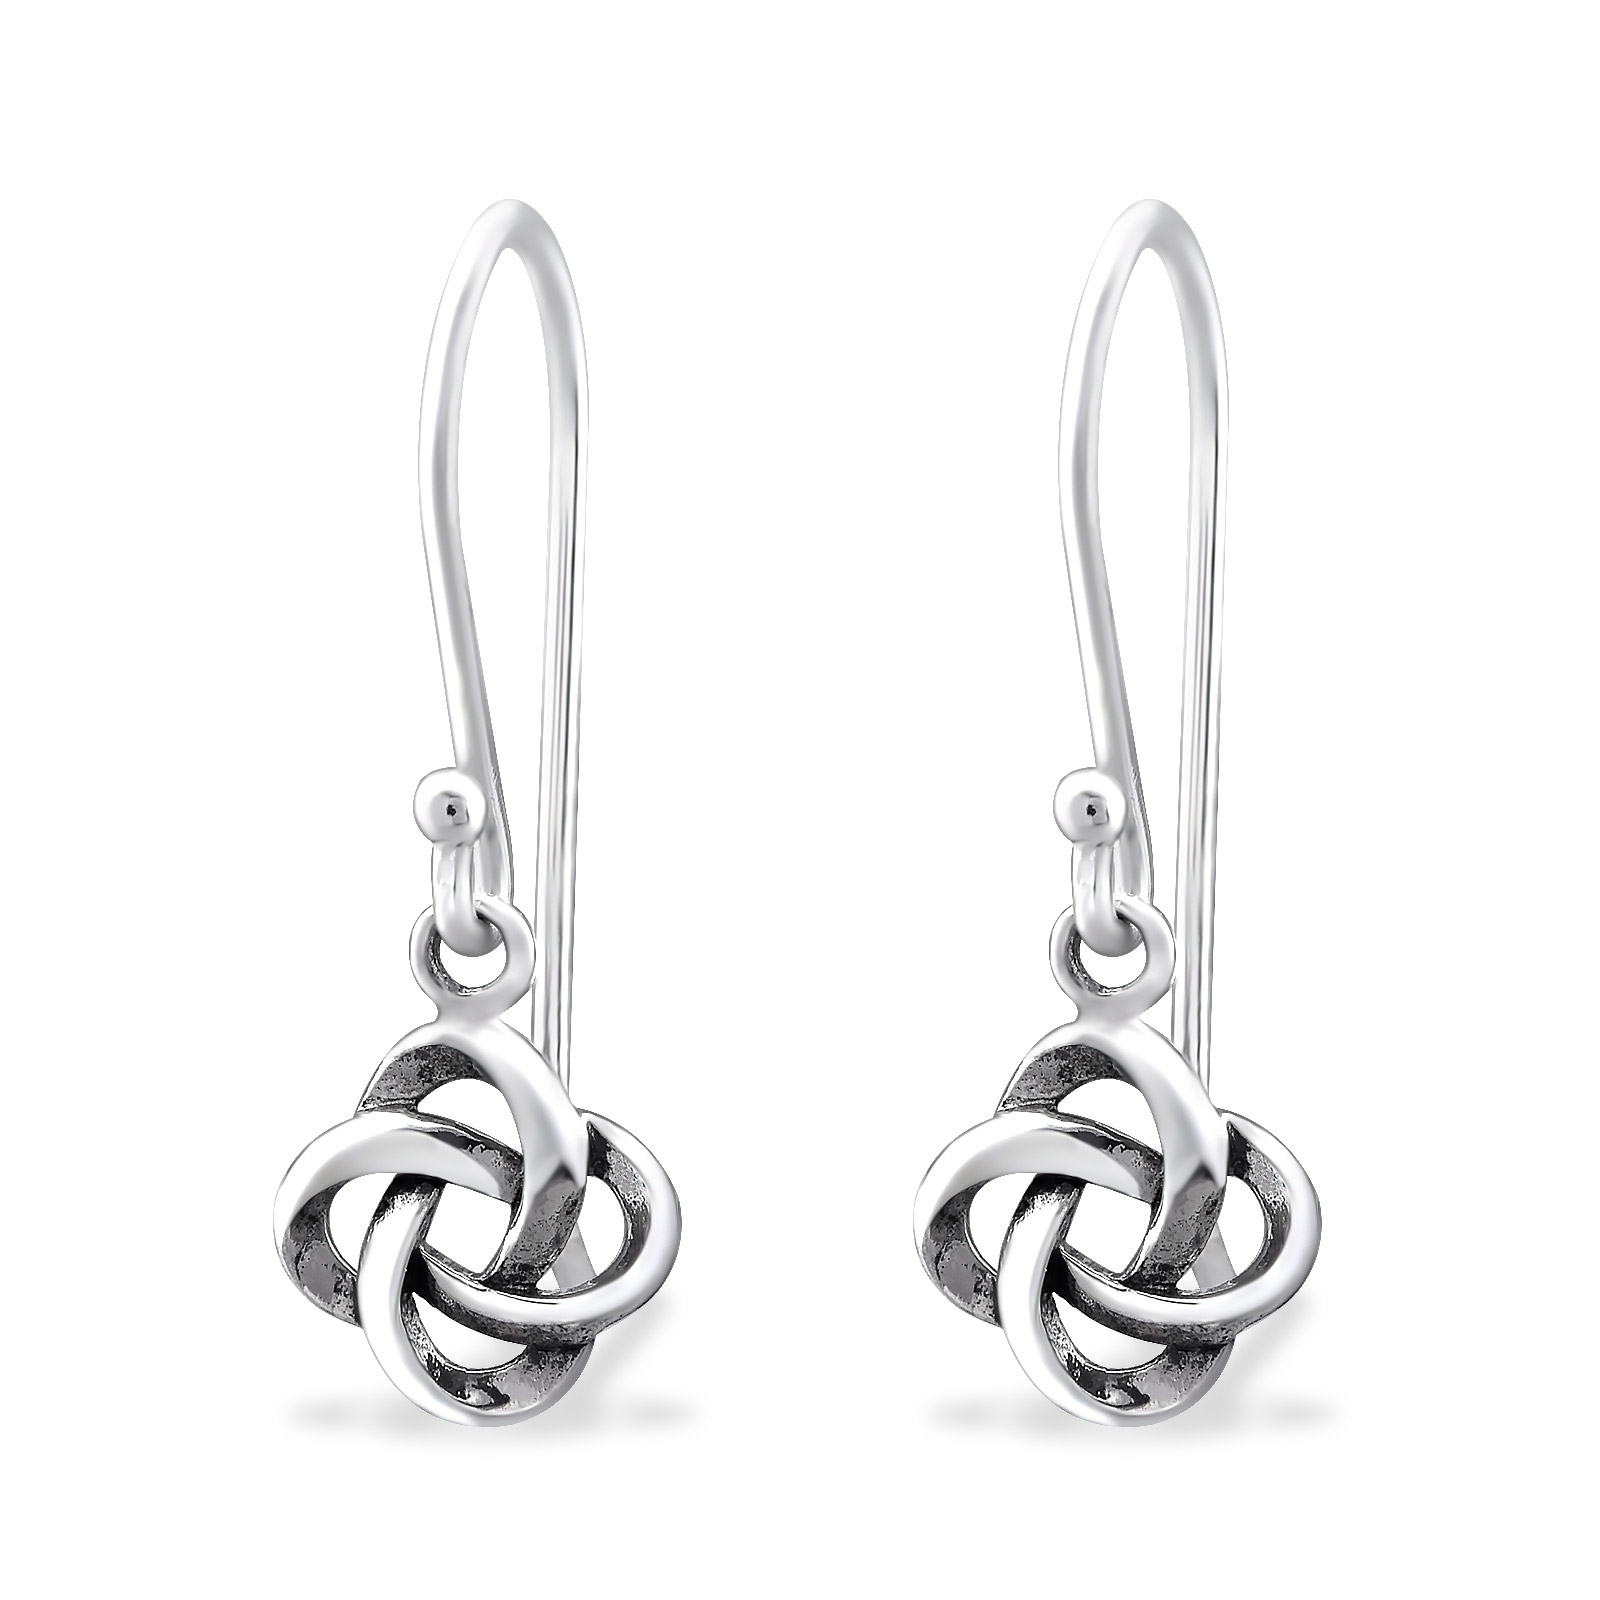 earrings knot diamond celtic silver sterling for gifts wg with white round her fascinating in stud earring nl jewelry cut